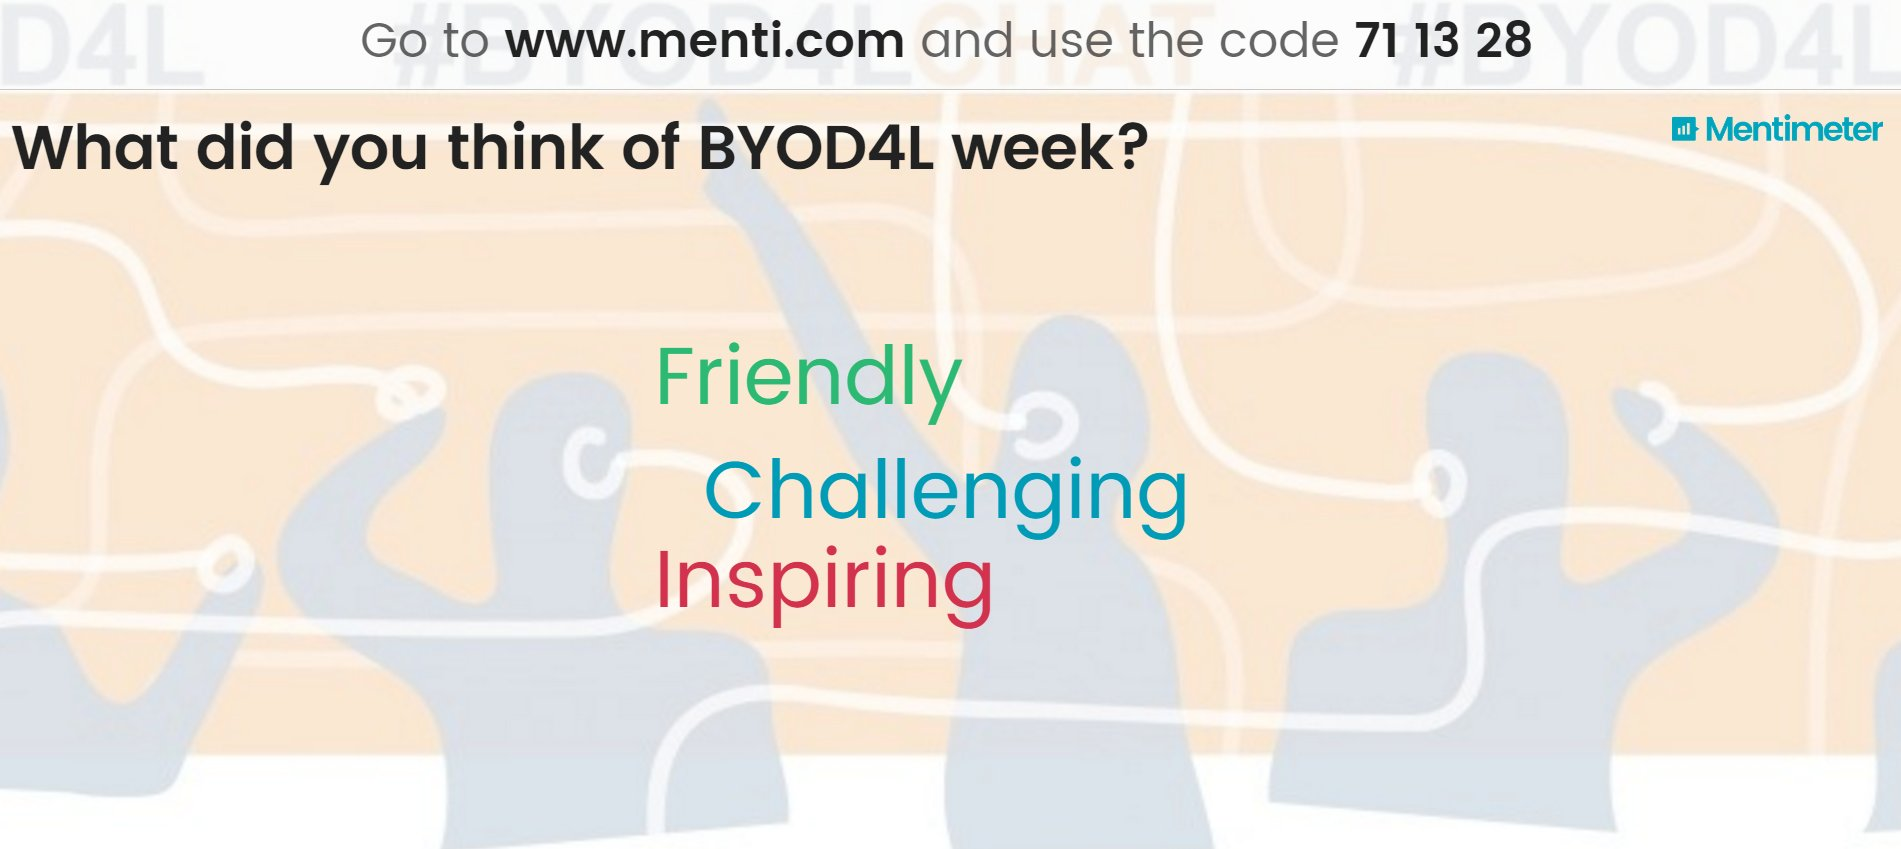 What 3 words would you use to describe #BYOD4L #BYOD4Lchat week? Share here https://t.co/iwaqJ7TvnM Live results: https://t.co/BMXcIPZ1sk https://t.co/ofUQkftsn0